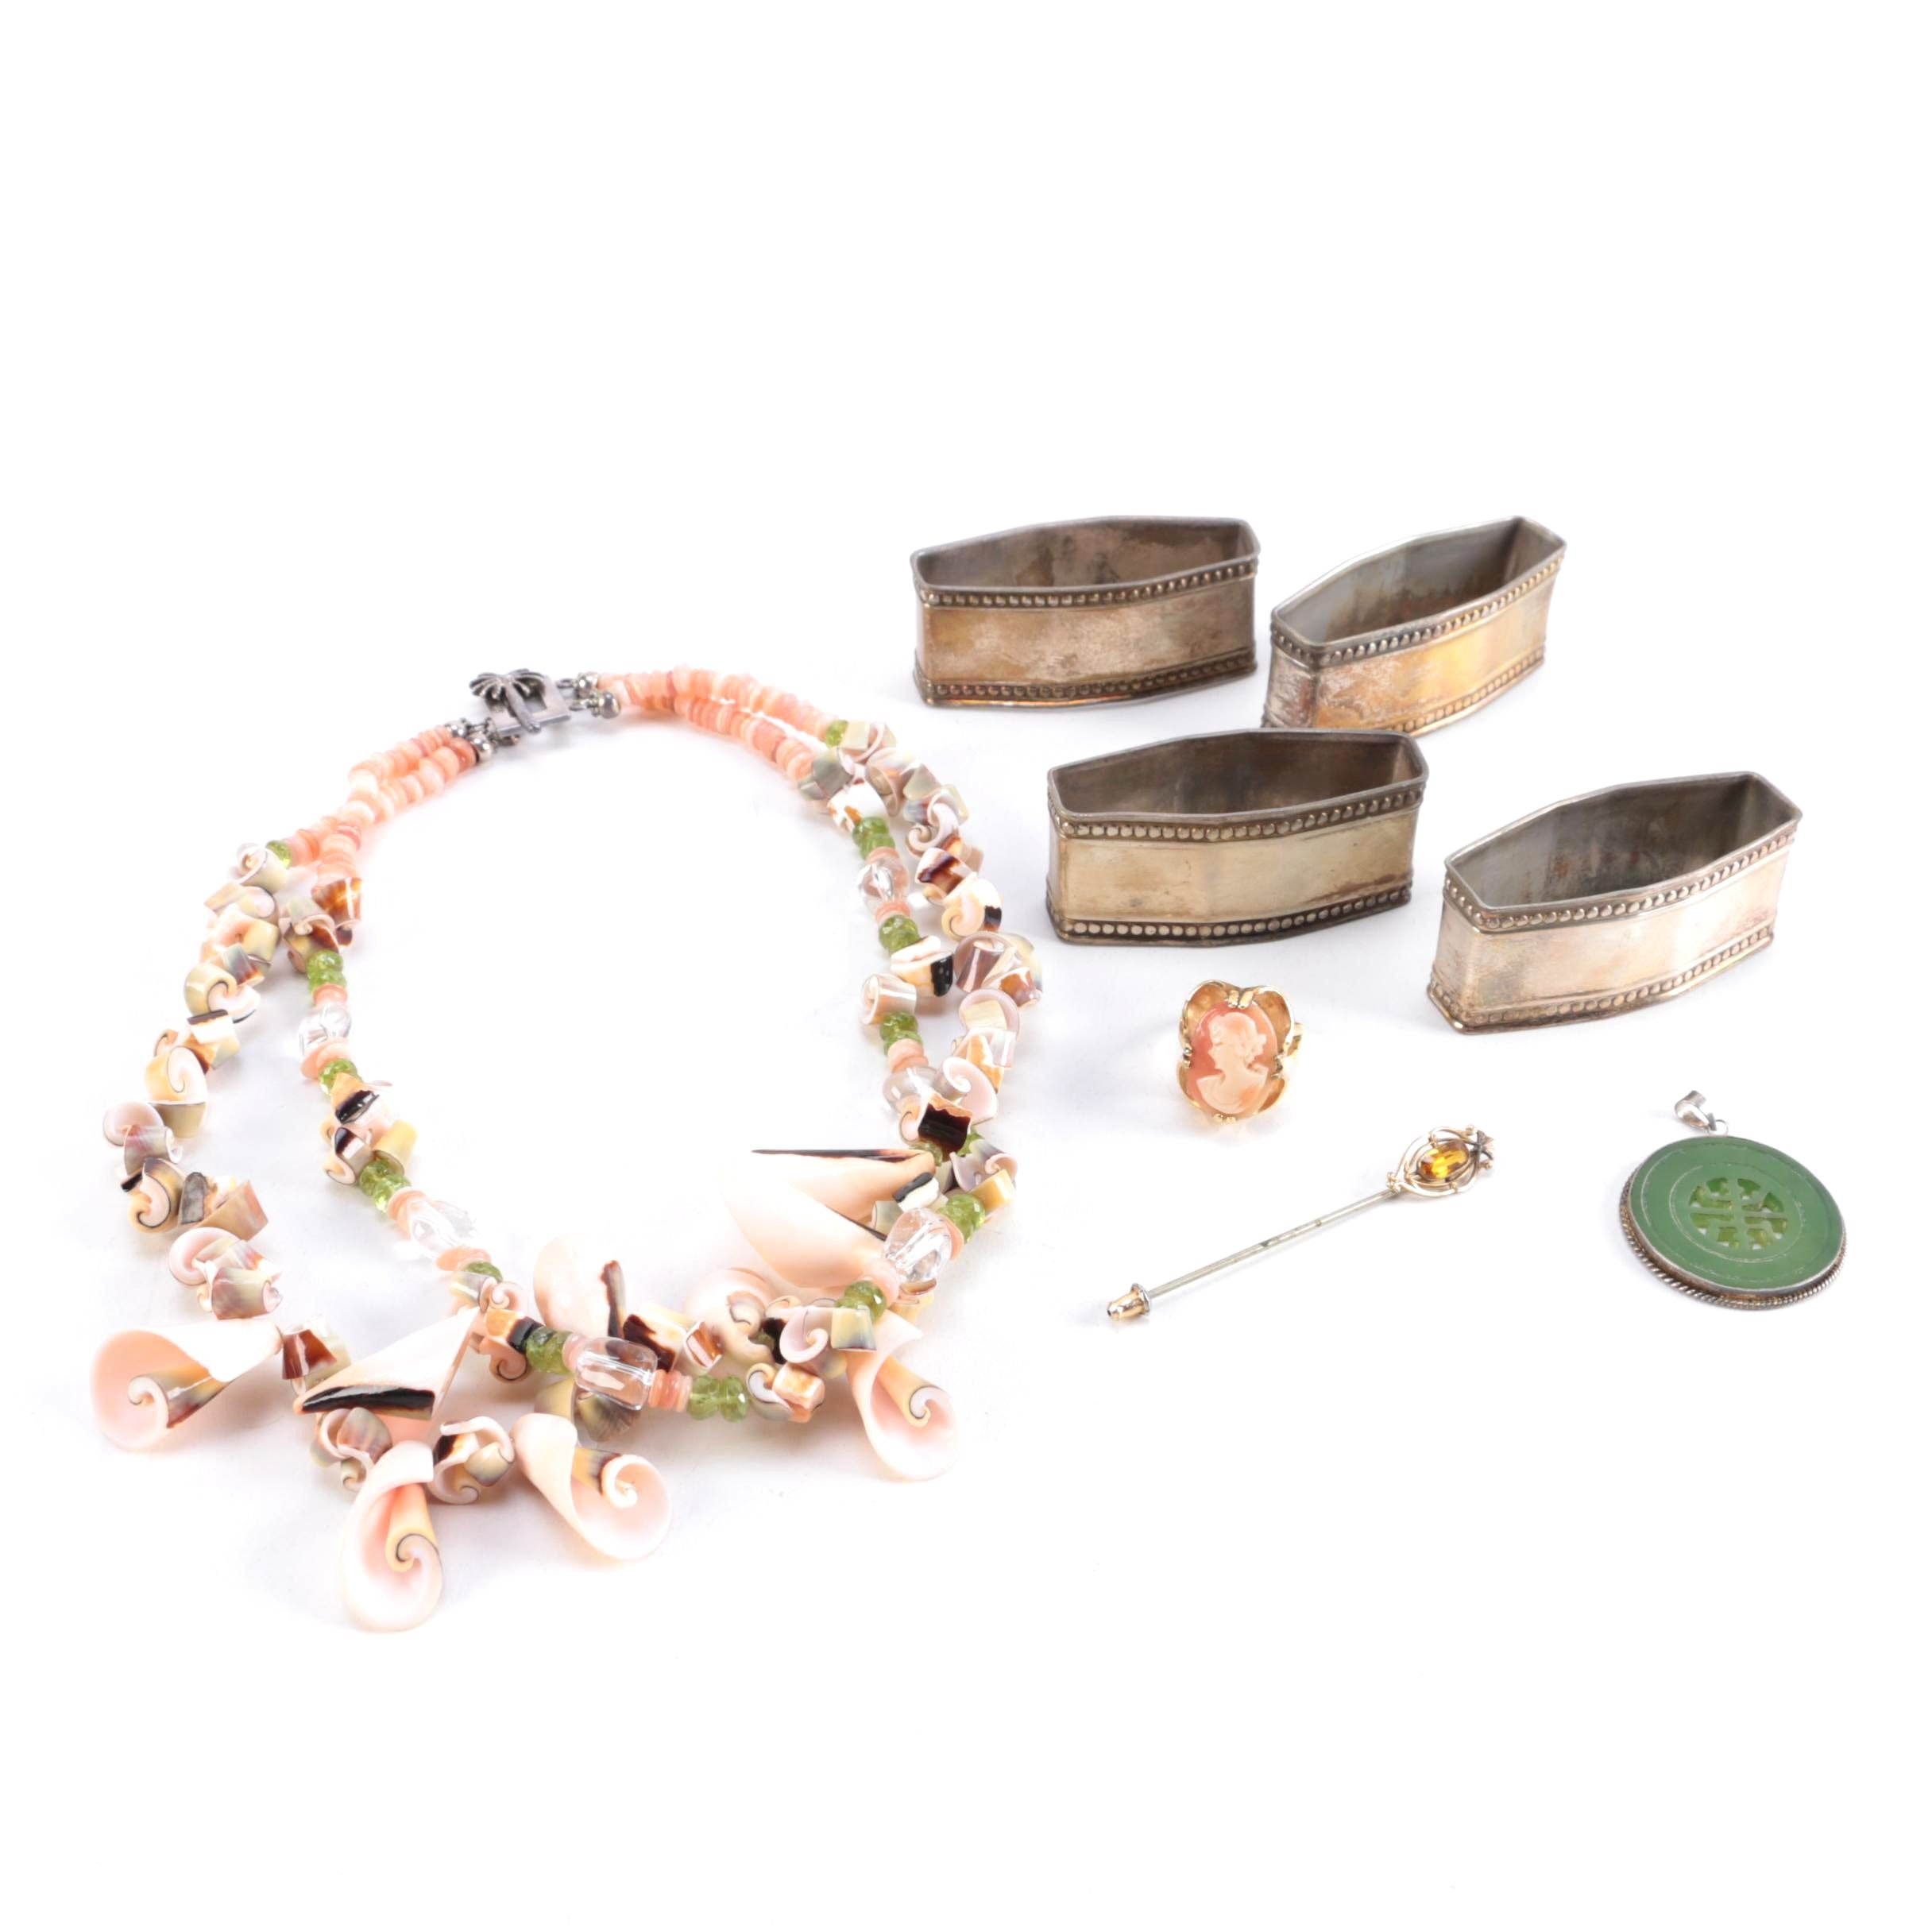 Costume Jewelry and Accessories Including a Sterling Silver Lily Pulitzer Necklace